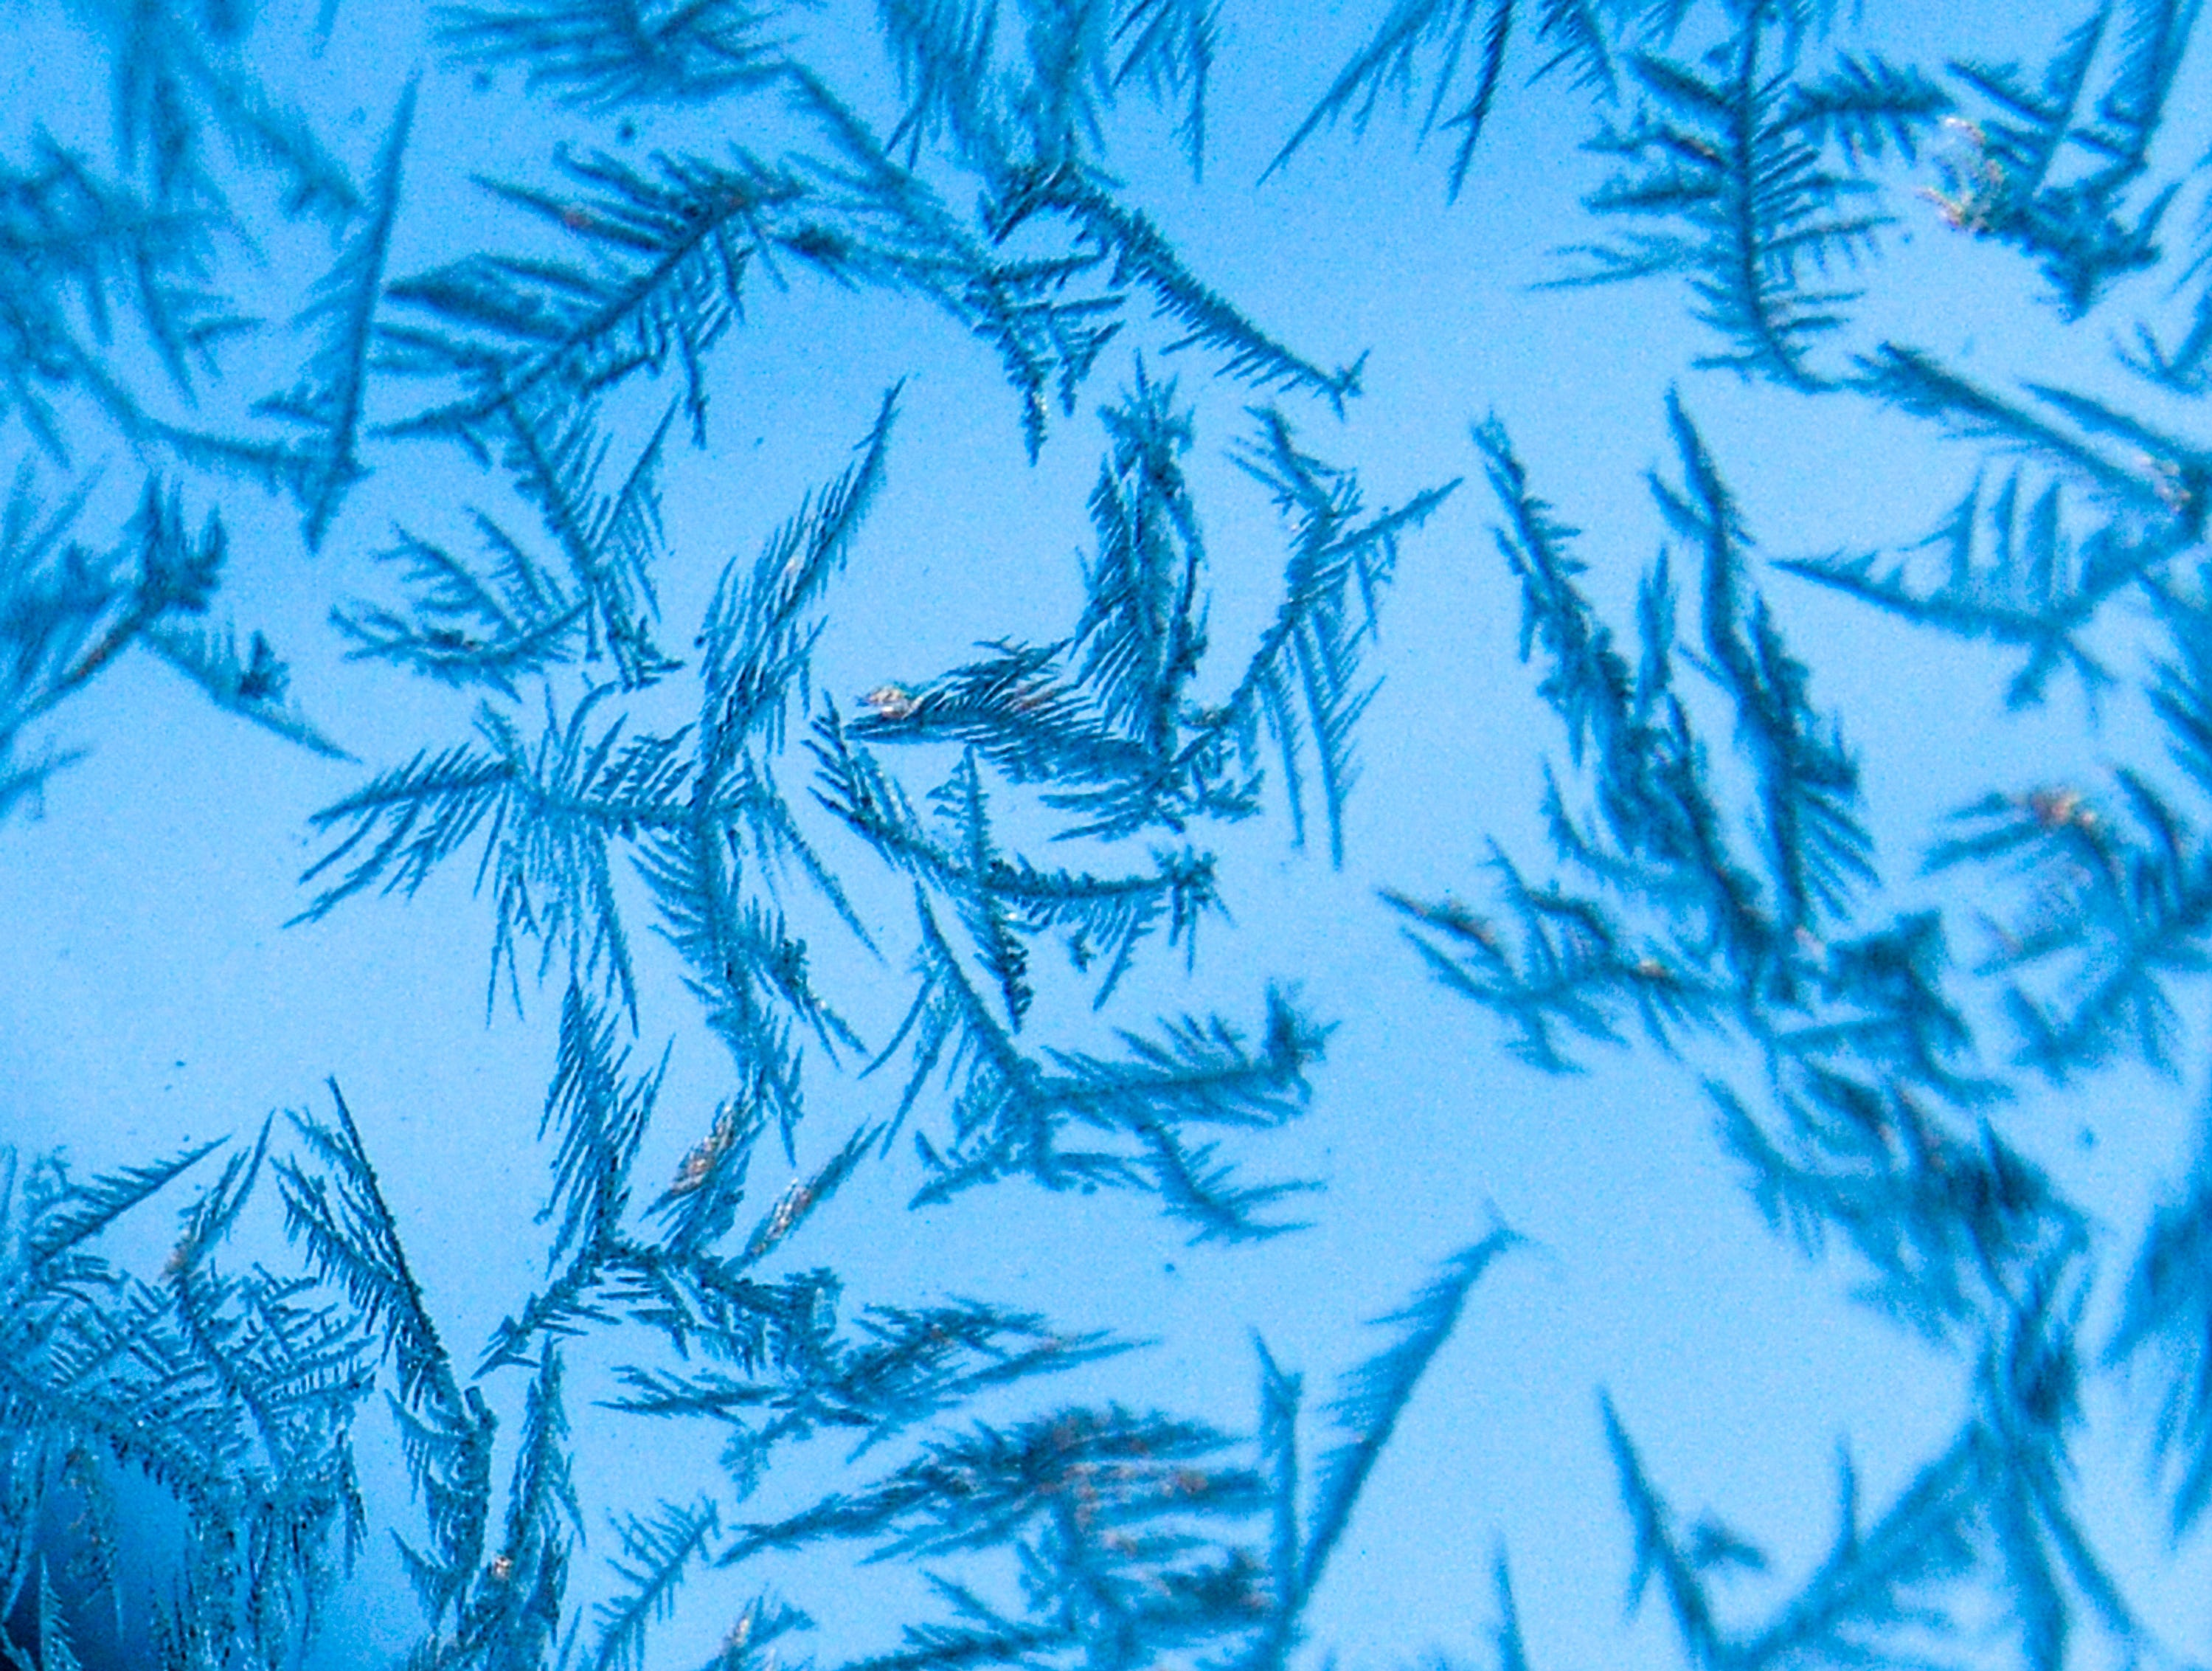 An icy car window shows snowflake-like crystals in 2017.